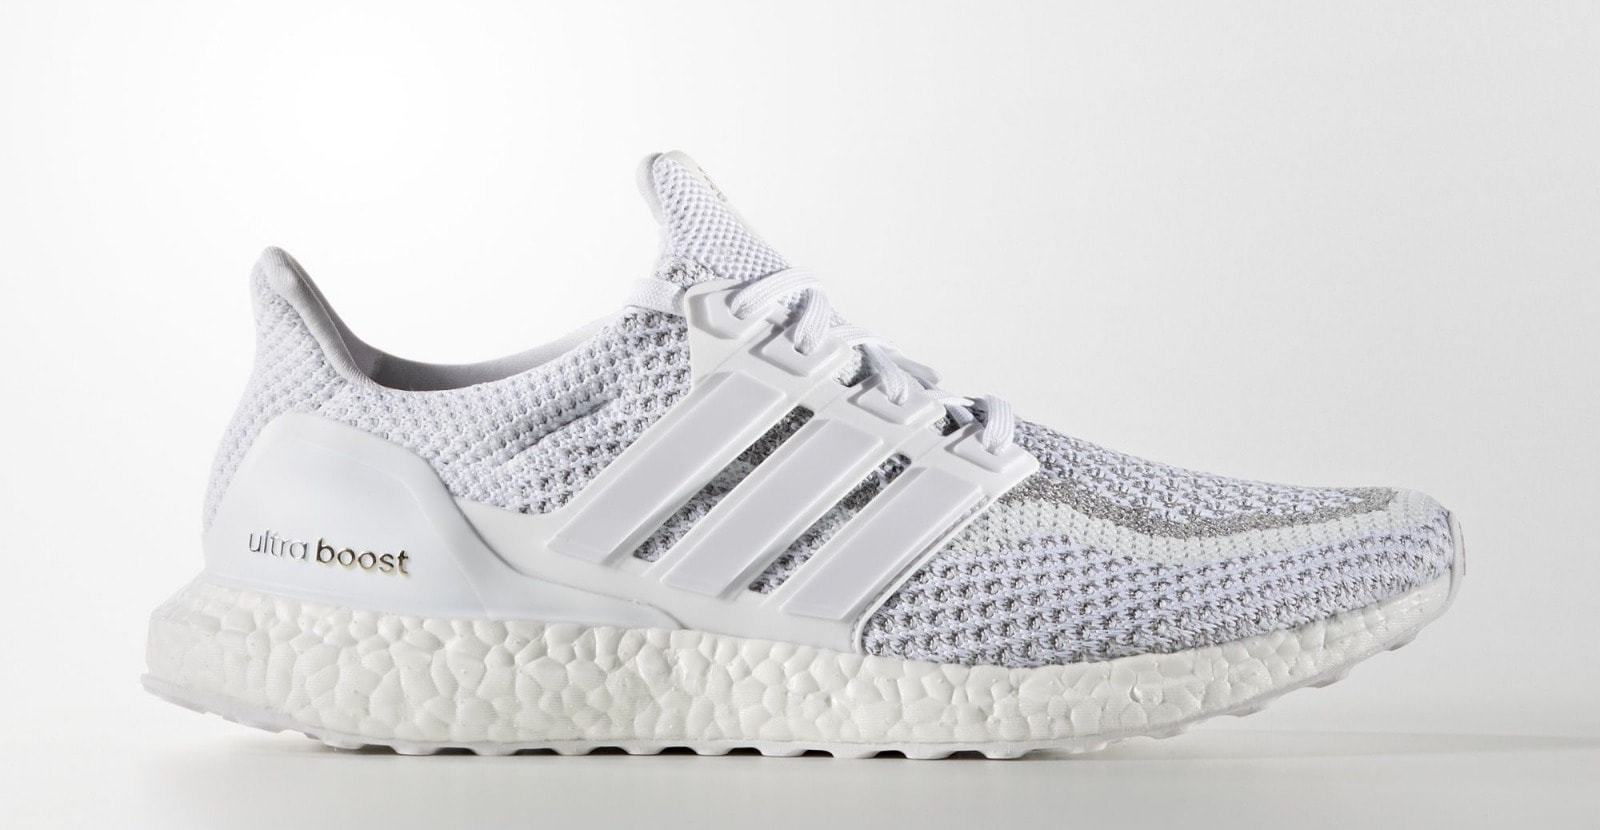 058349fcd167f The adidas Ultra Boost has grown to become one of the brand s most popular  franchises in recent years. Following the re-release of the Multicolor  rendition